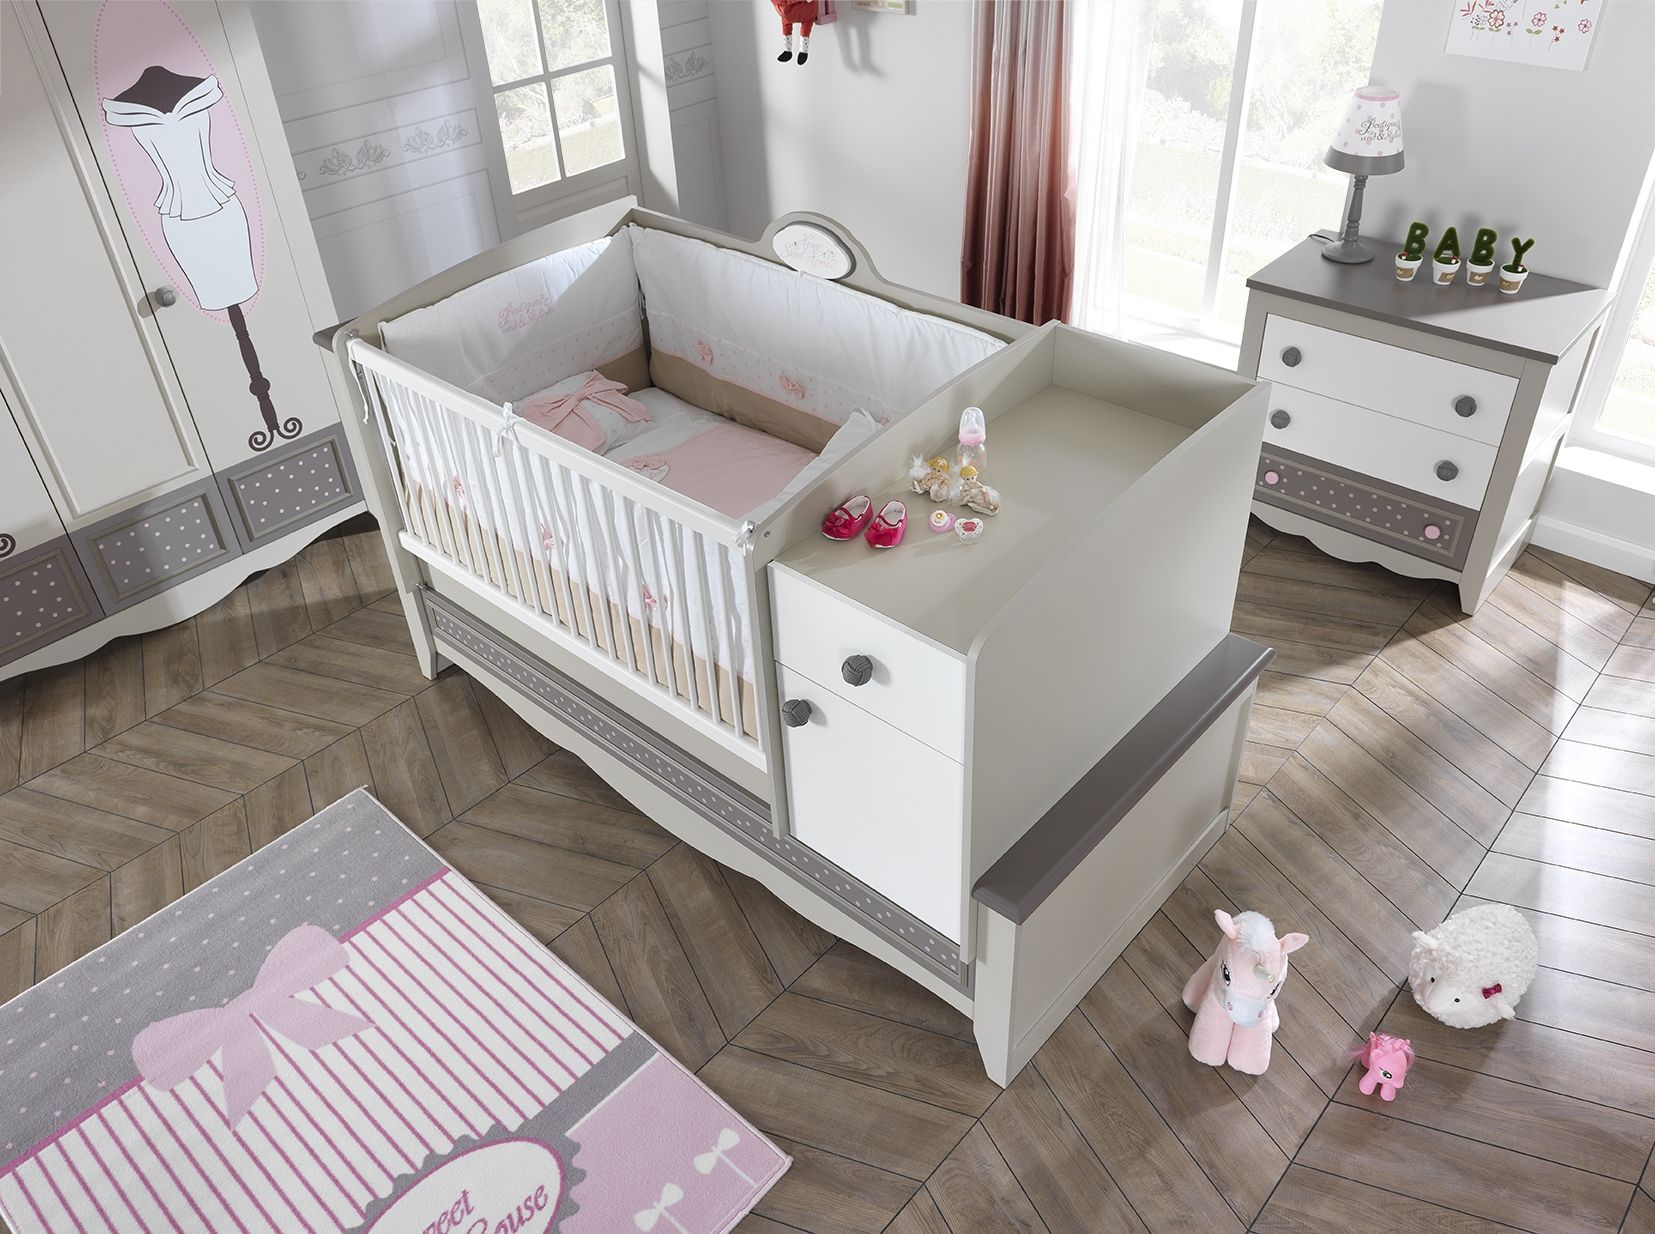 HOUSES Baby Bedding Set